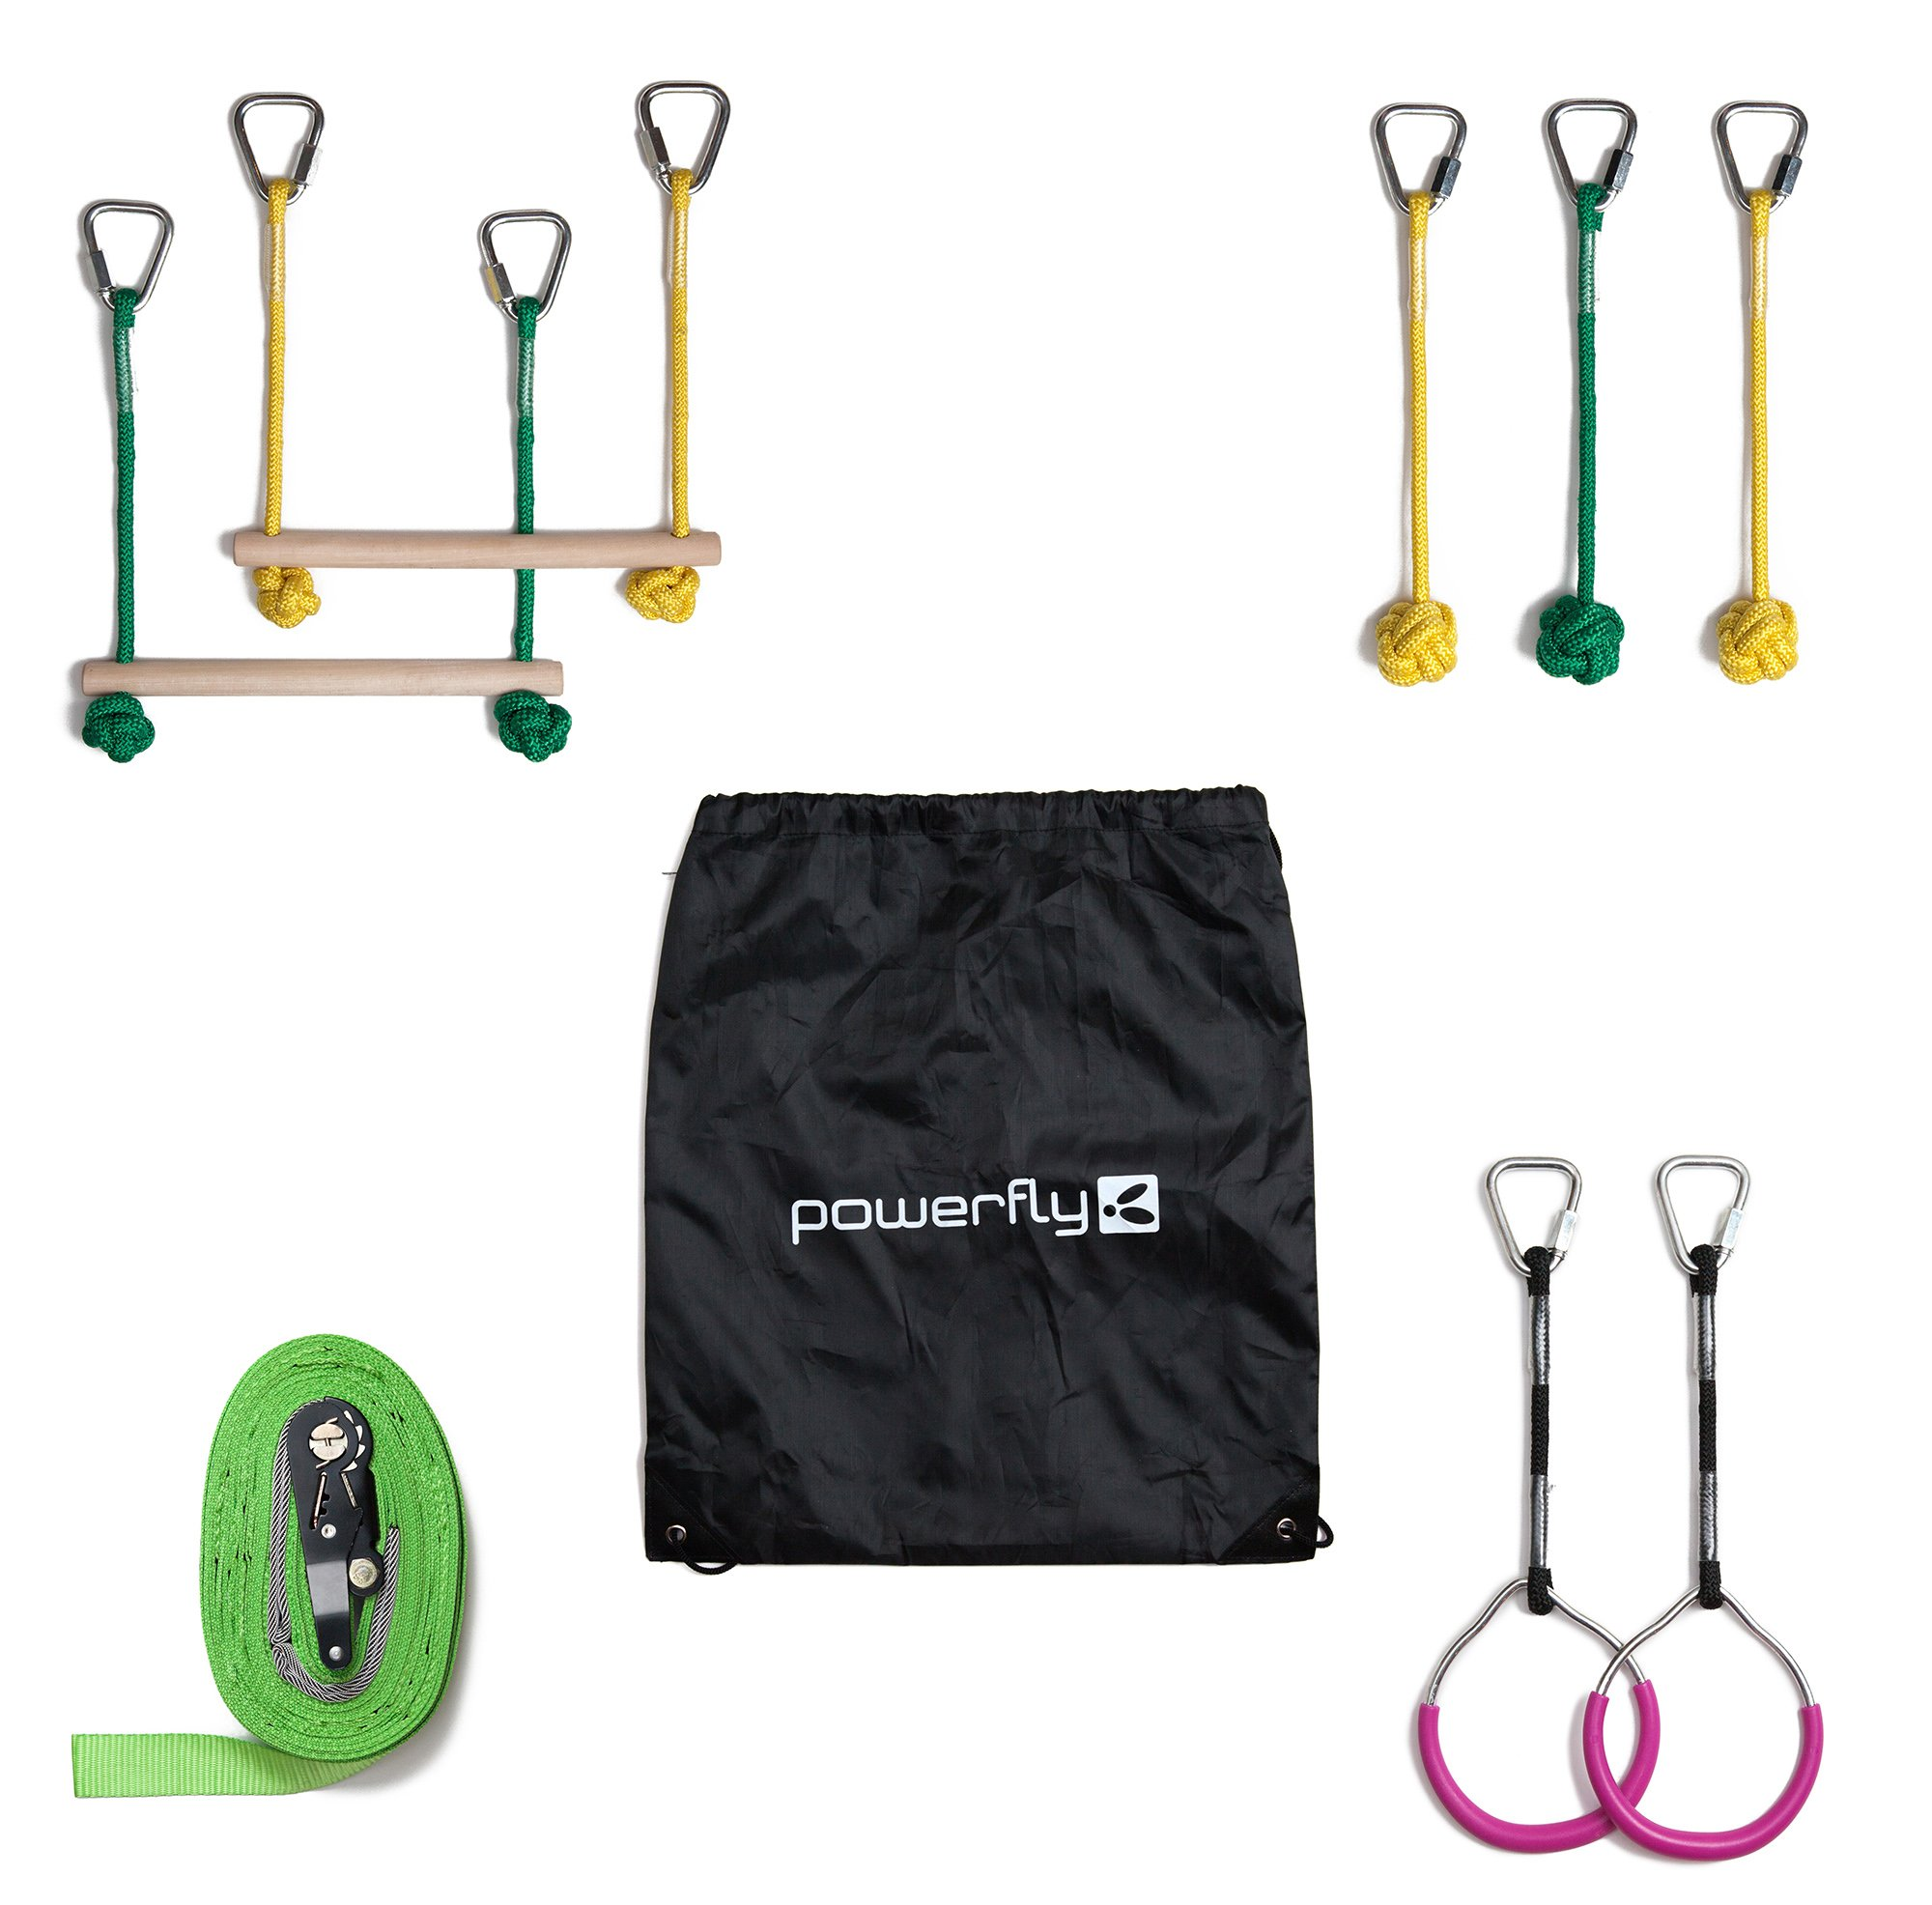 Powerfly Ninja Hanging Obstacle Course Kit for Kids - 36' Slackline, 2 Monkey Bars, 2 Gymnastics Rings, 3 Fists - Obstacles Adventure Line Equipment Set for Backyard or Playground Activities by Powerfly (Image #4)